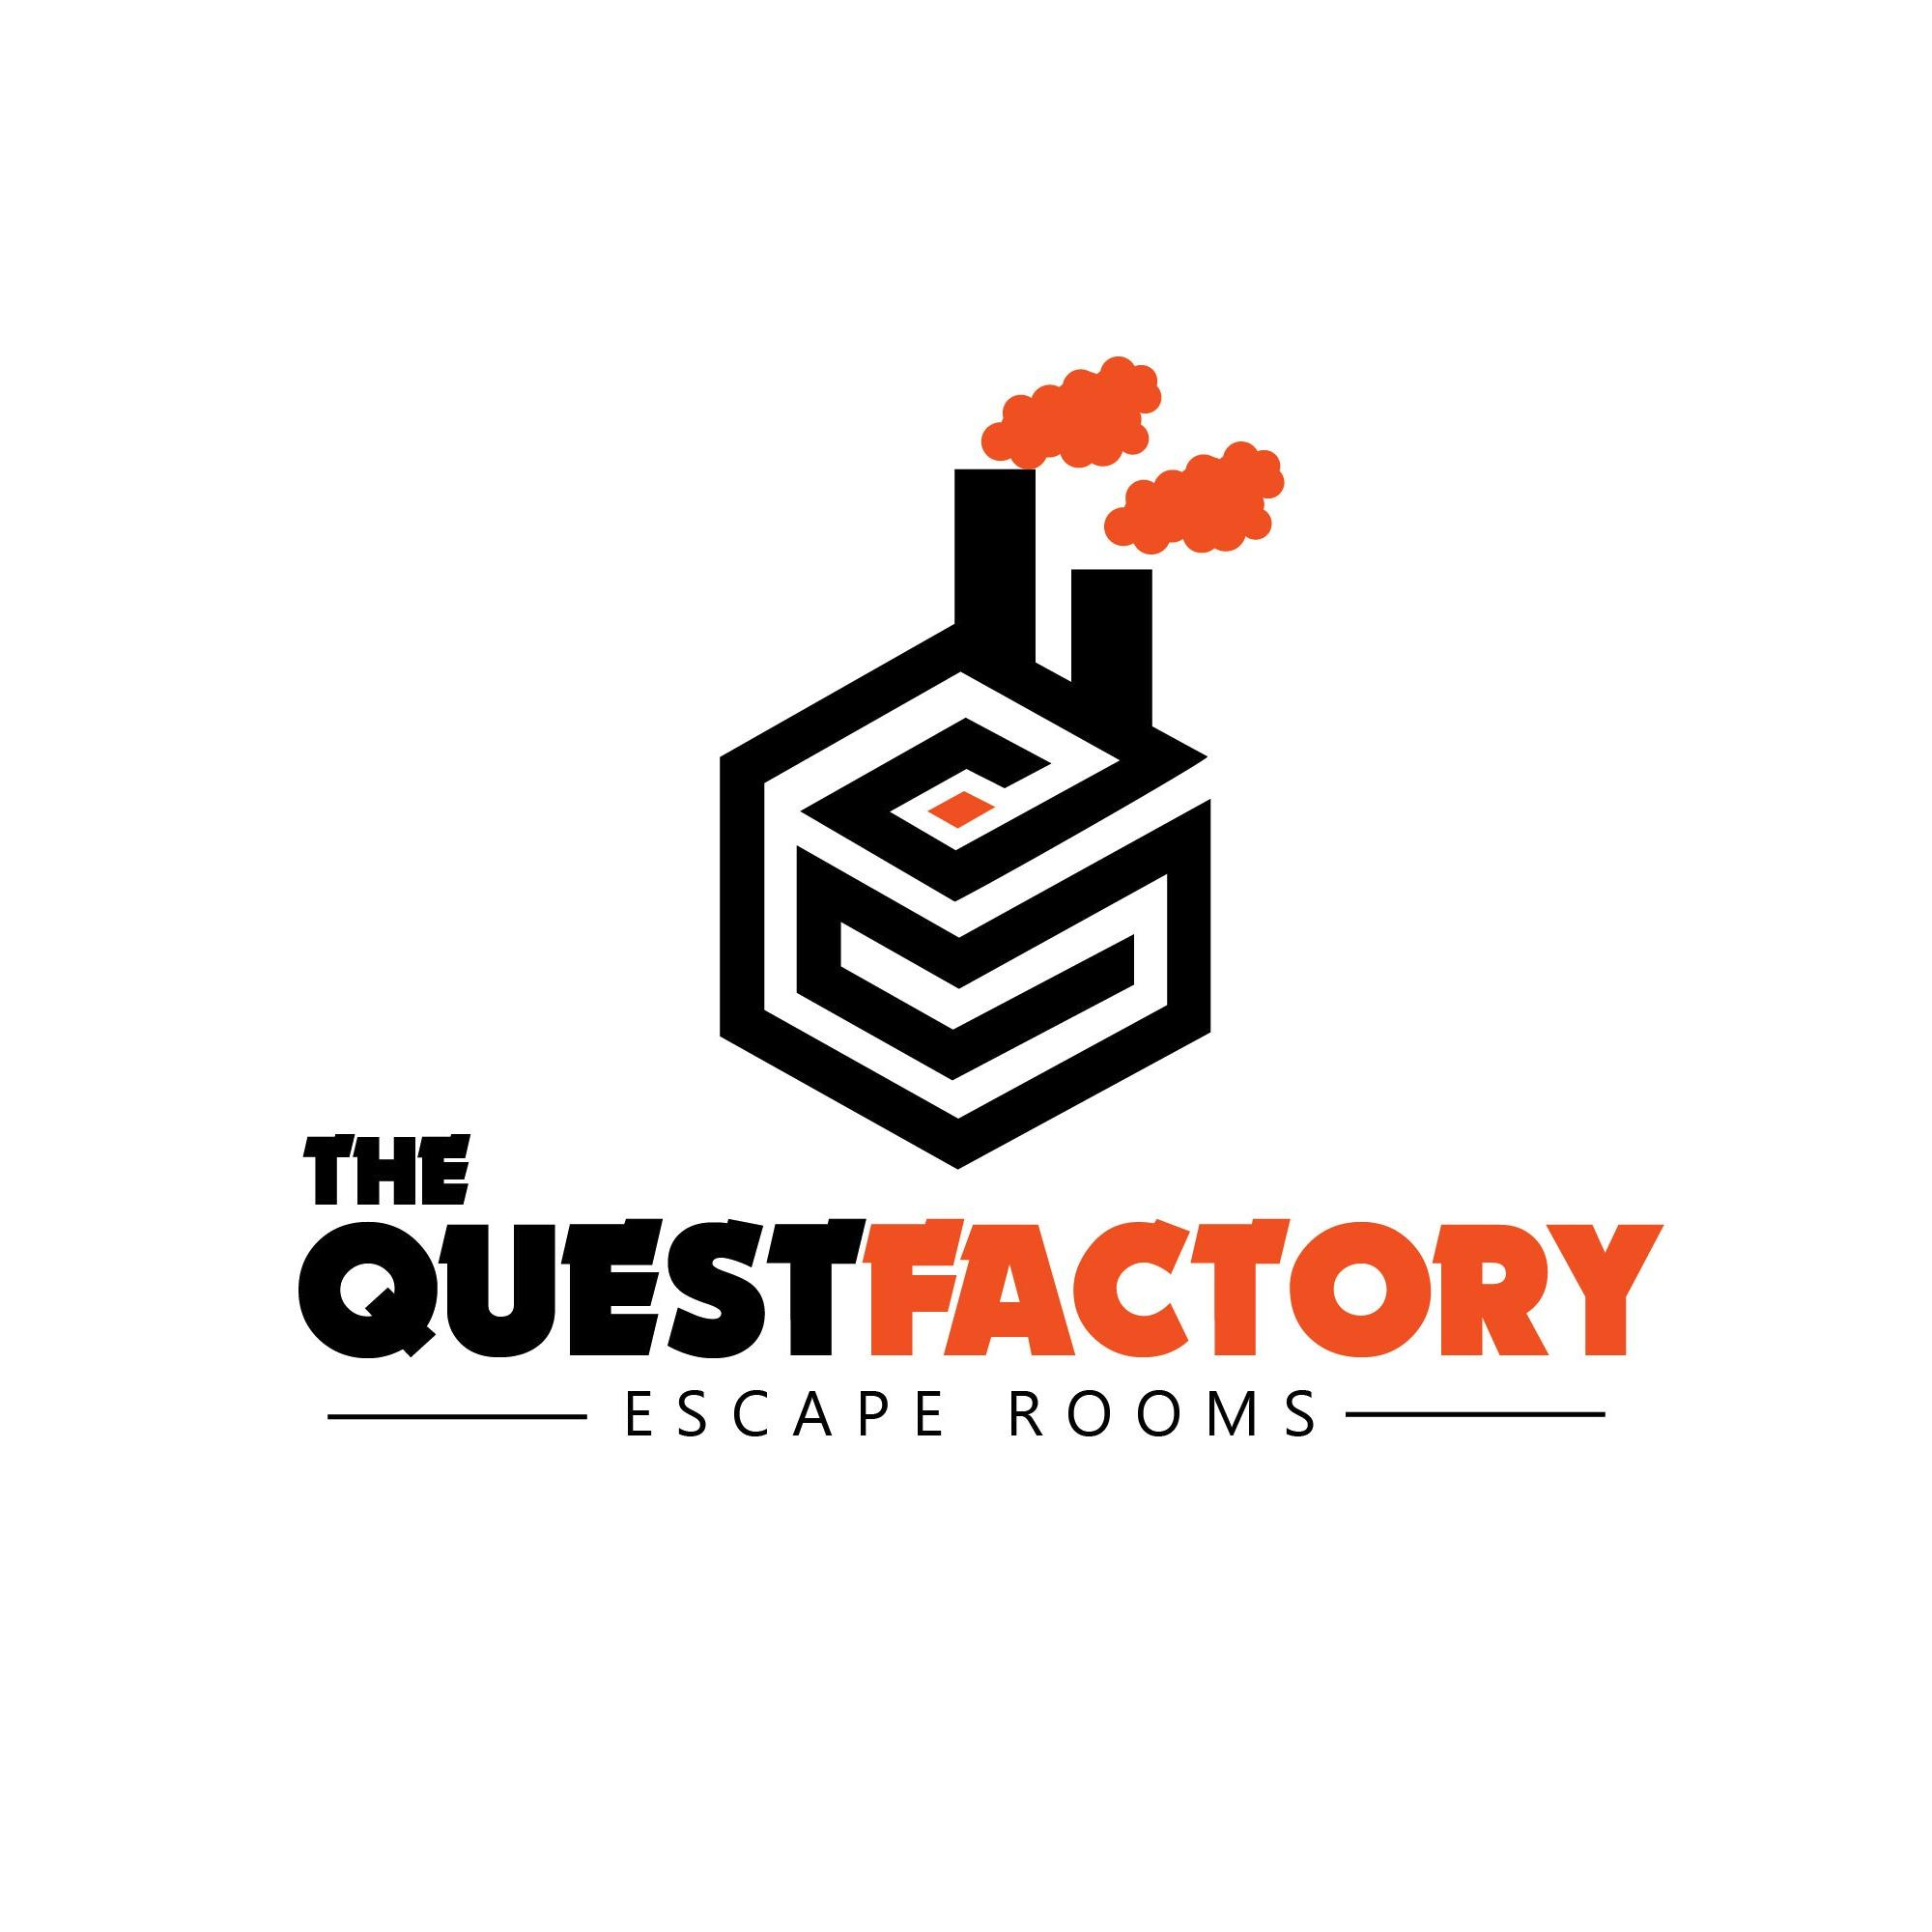 The Quest Factory Escape Rooms image 4